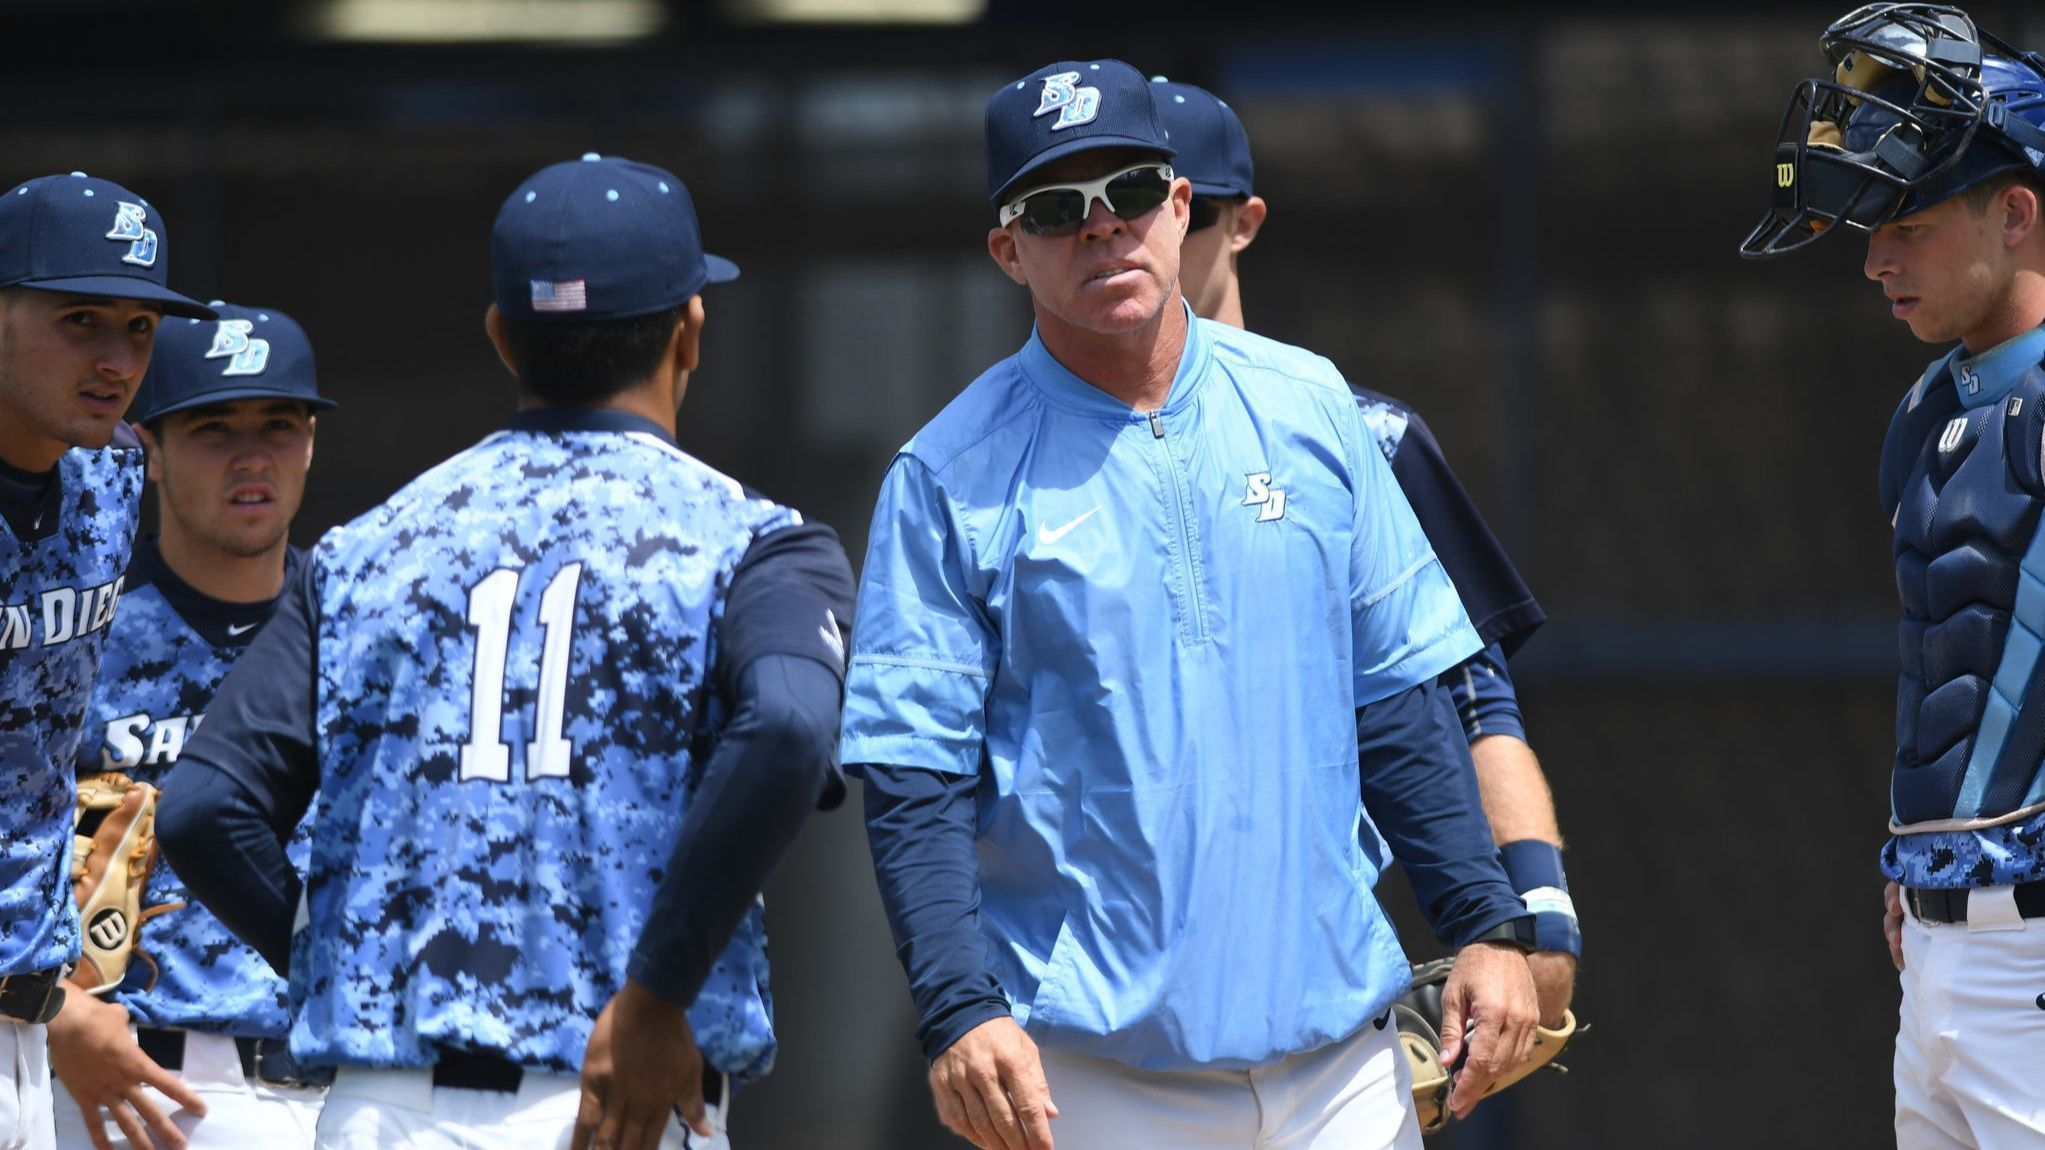 USD remaking baseball staff after three assistant coaches resign